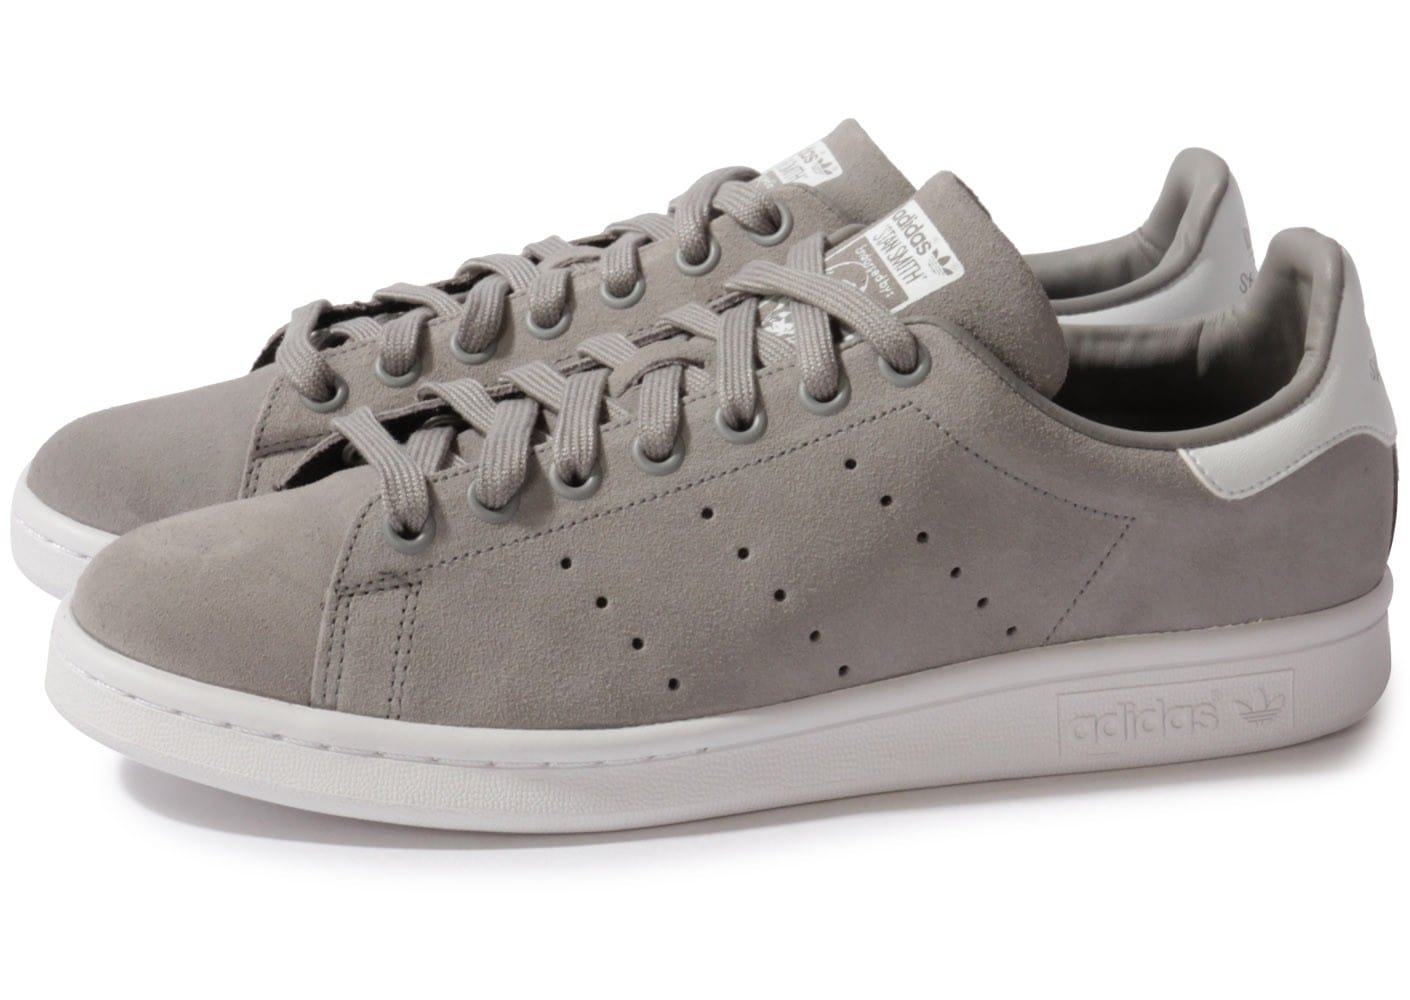 nouveau style 6a5ee cfb30 adidas Stan Smith Grise - Chaussures Baskets homme - Chausport